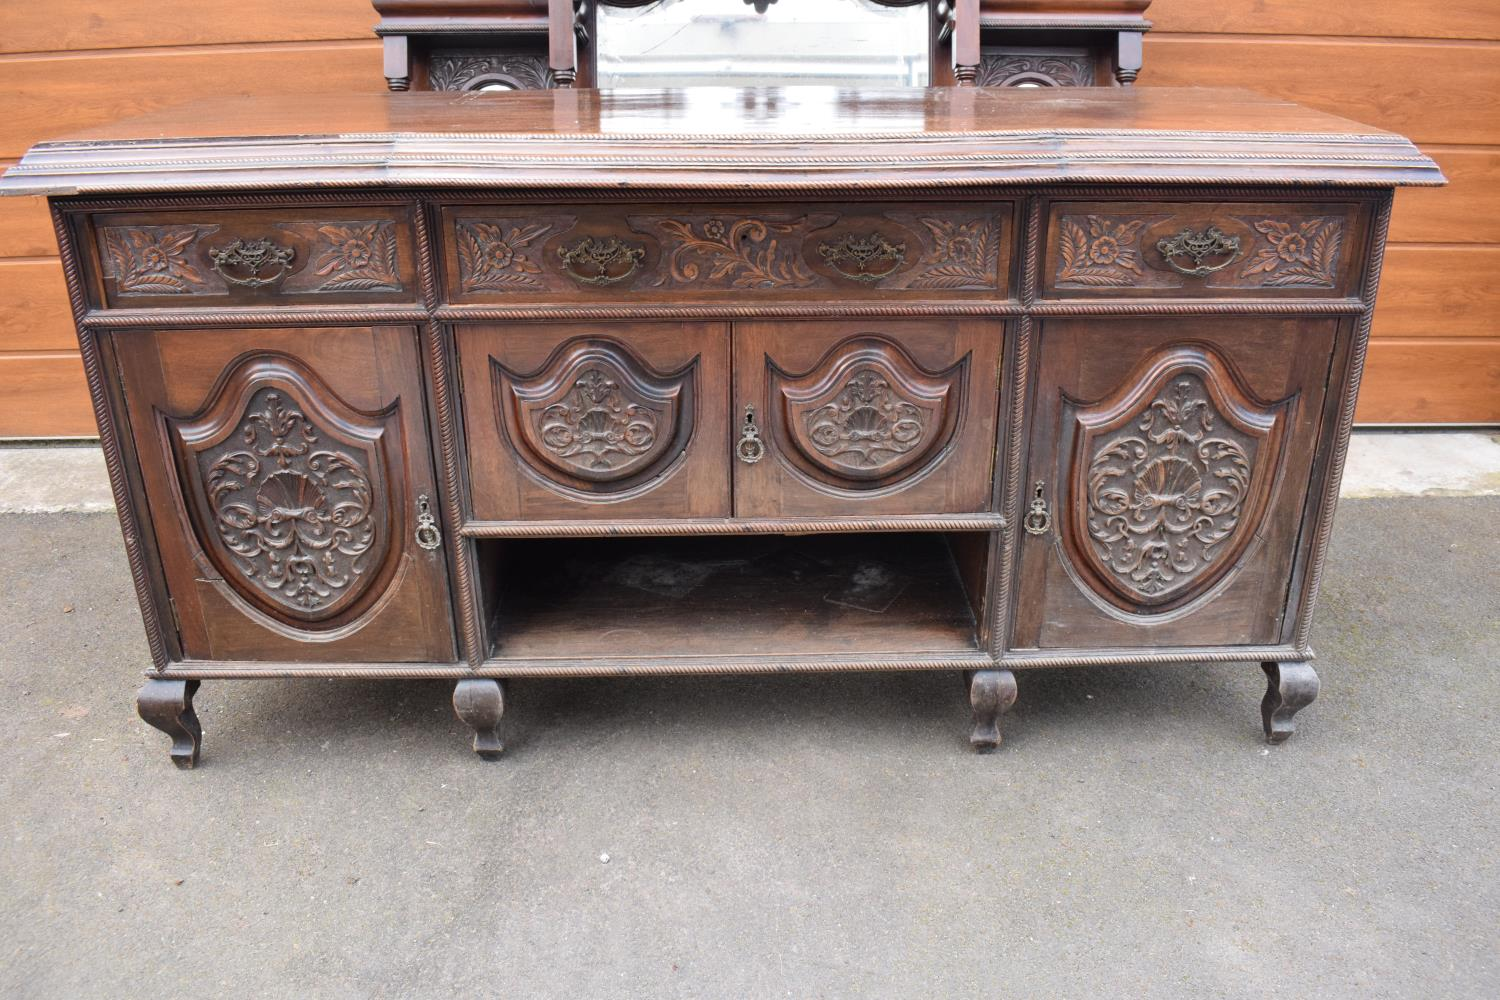 Edwardian large carved oak mirror backed sideboard. 178 x 64 x 224cm height. In good functional - Image 13 of 18